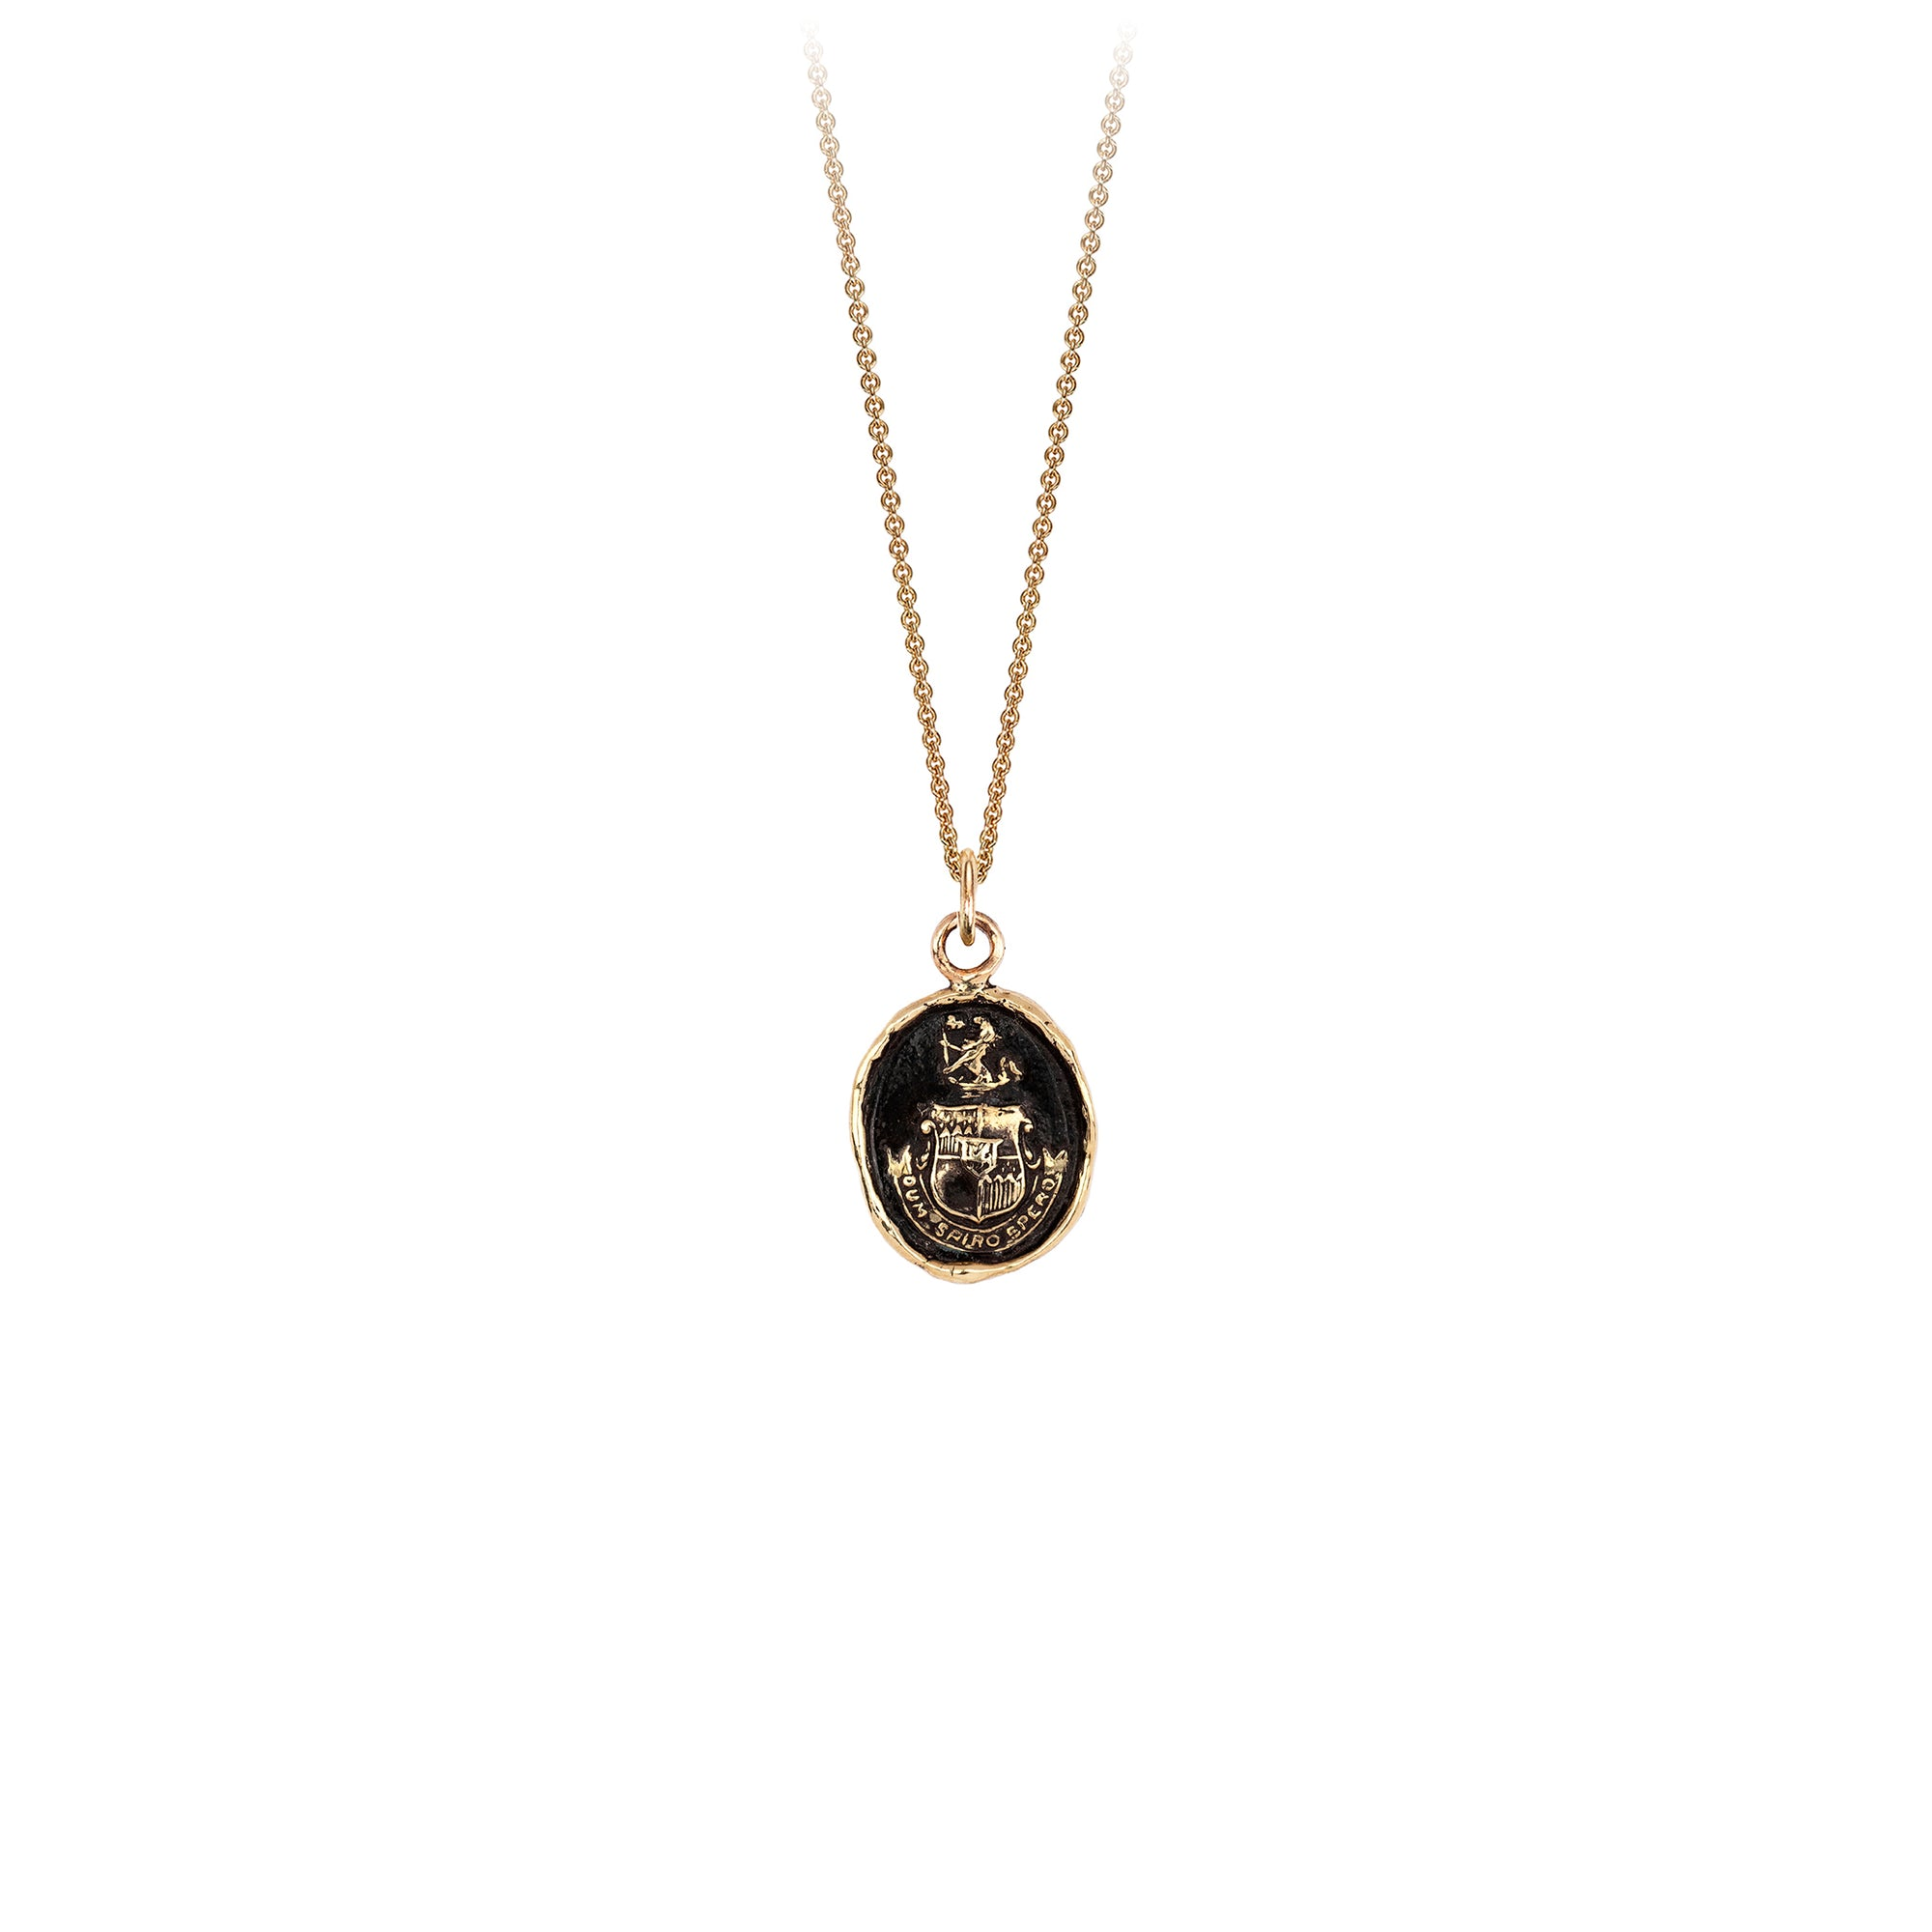 Pyrrha Courage to Hope 14K Gold Talisman Necklace